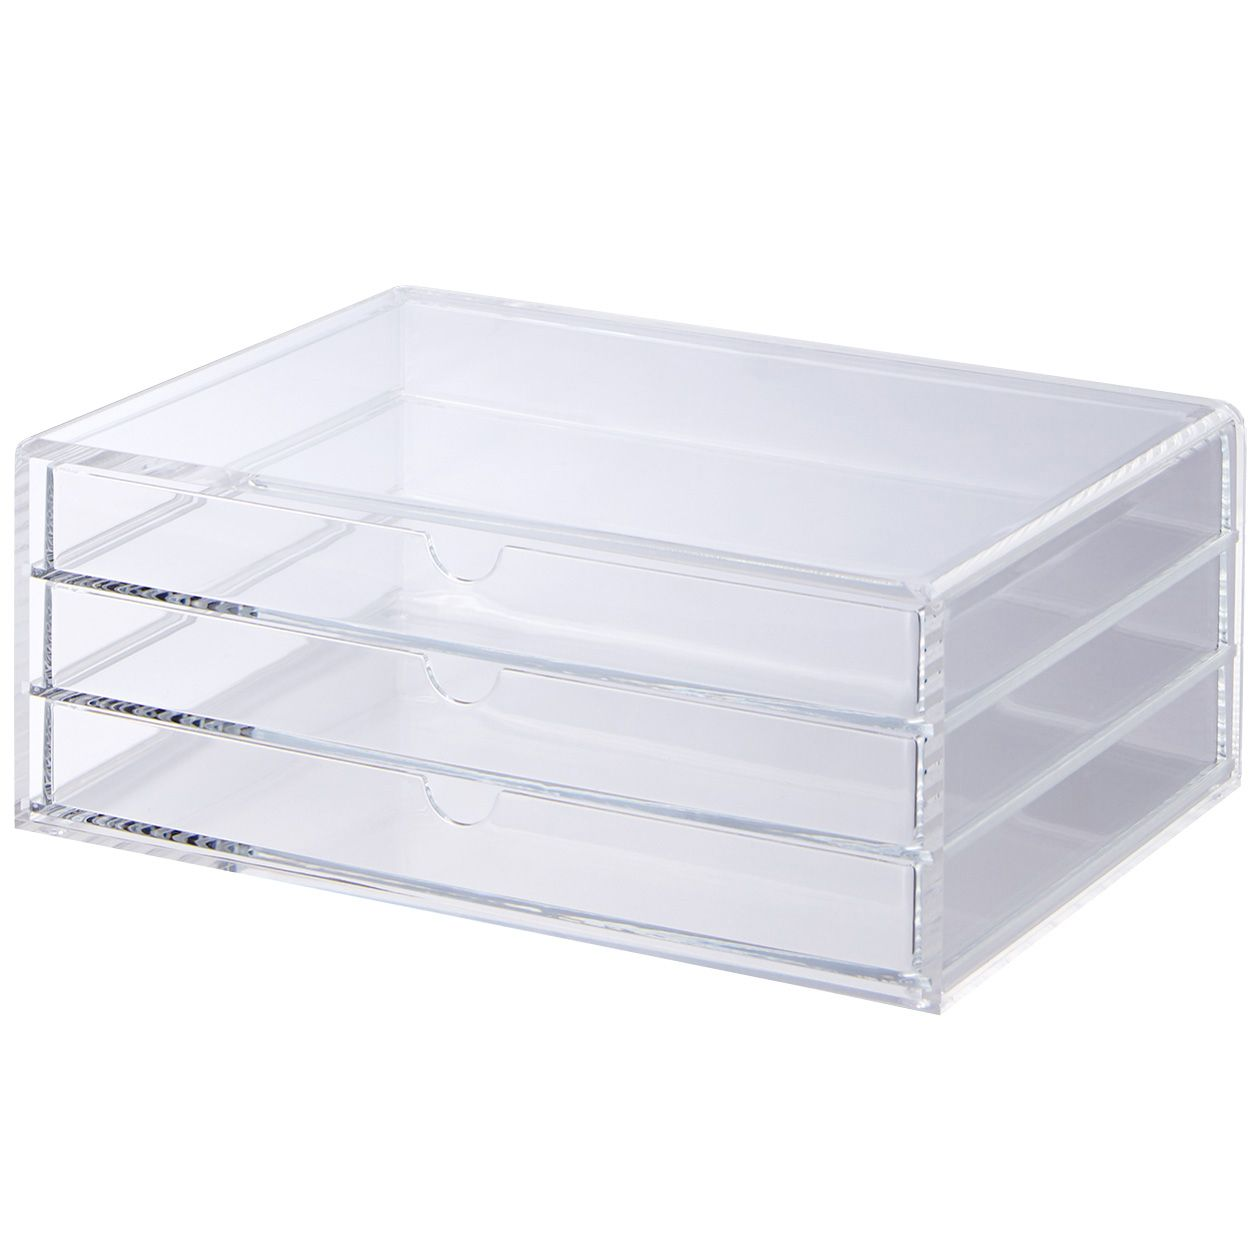 Acrylic Box - 3 Drawers A versatile box with three pull out ...